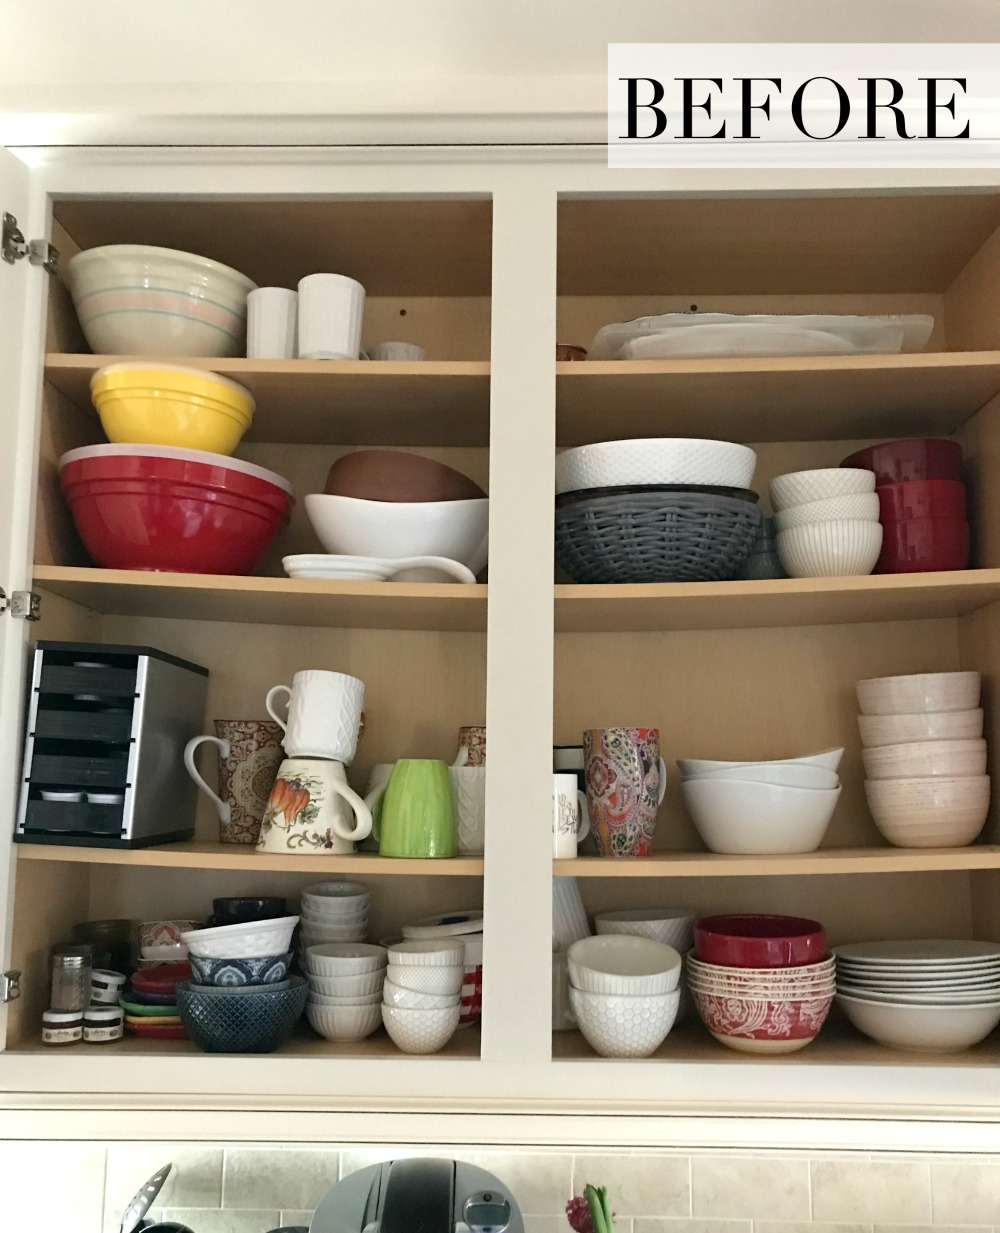 Before Organizing the Kitchen Bowl Cabinet